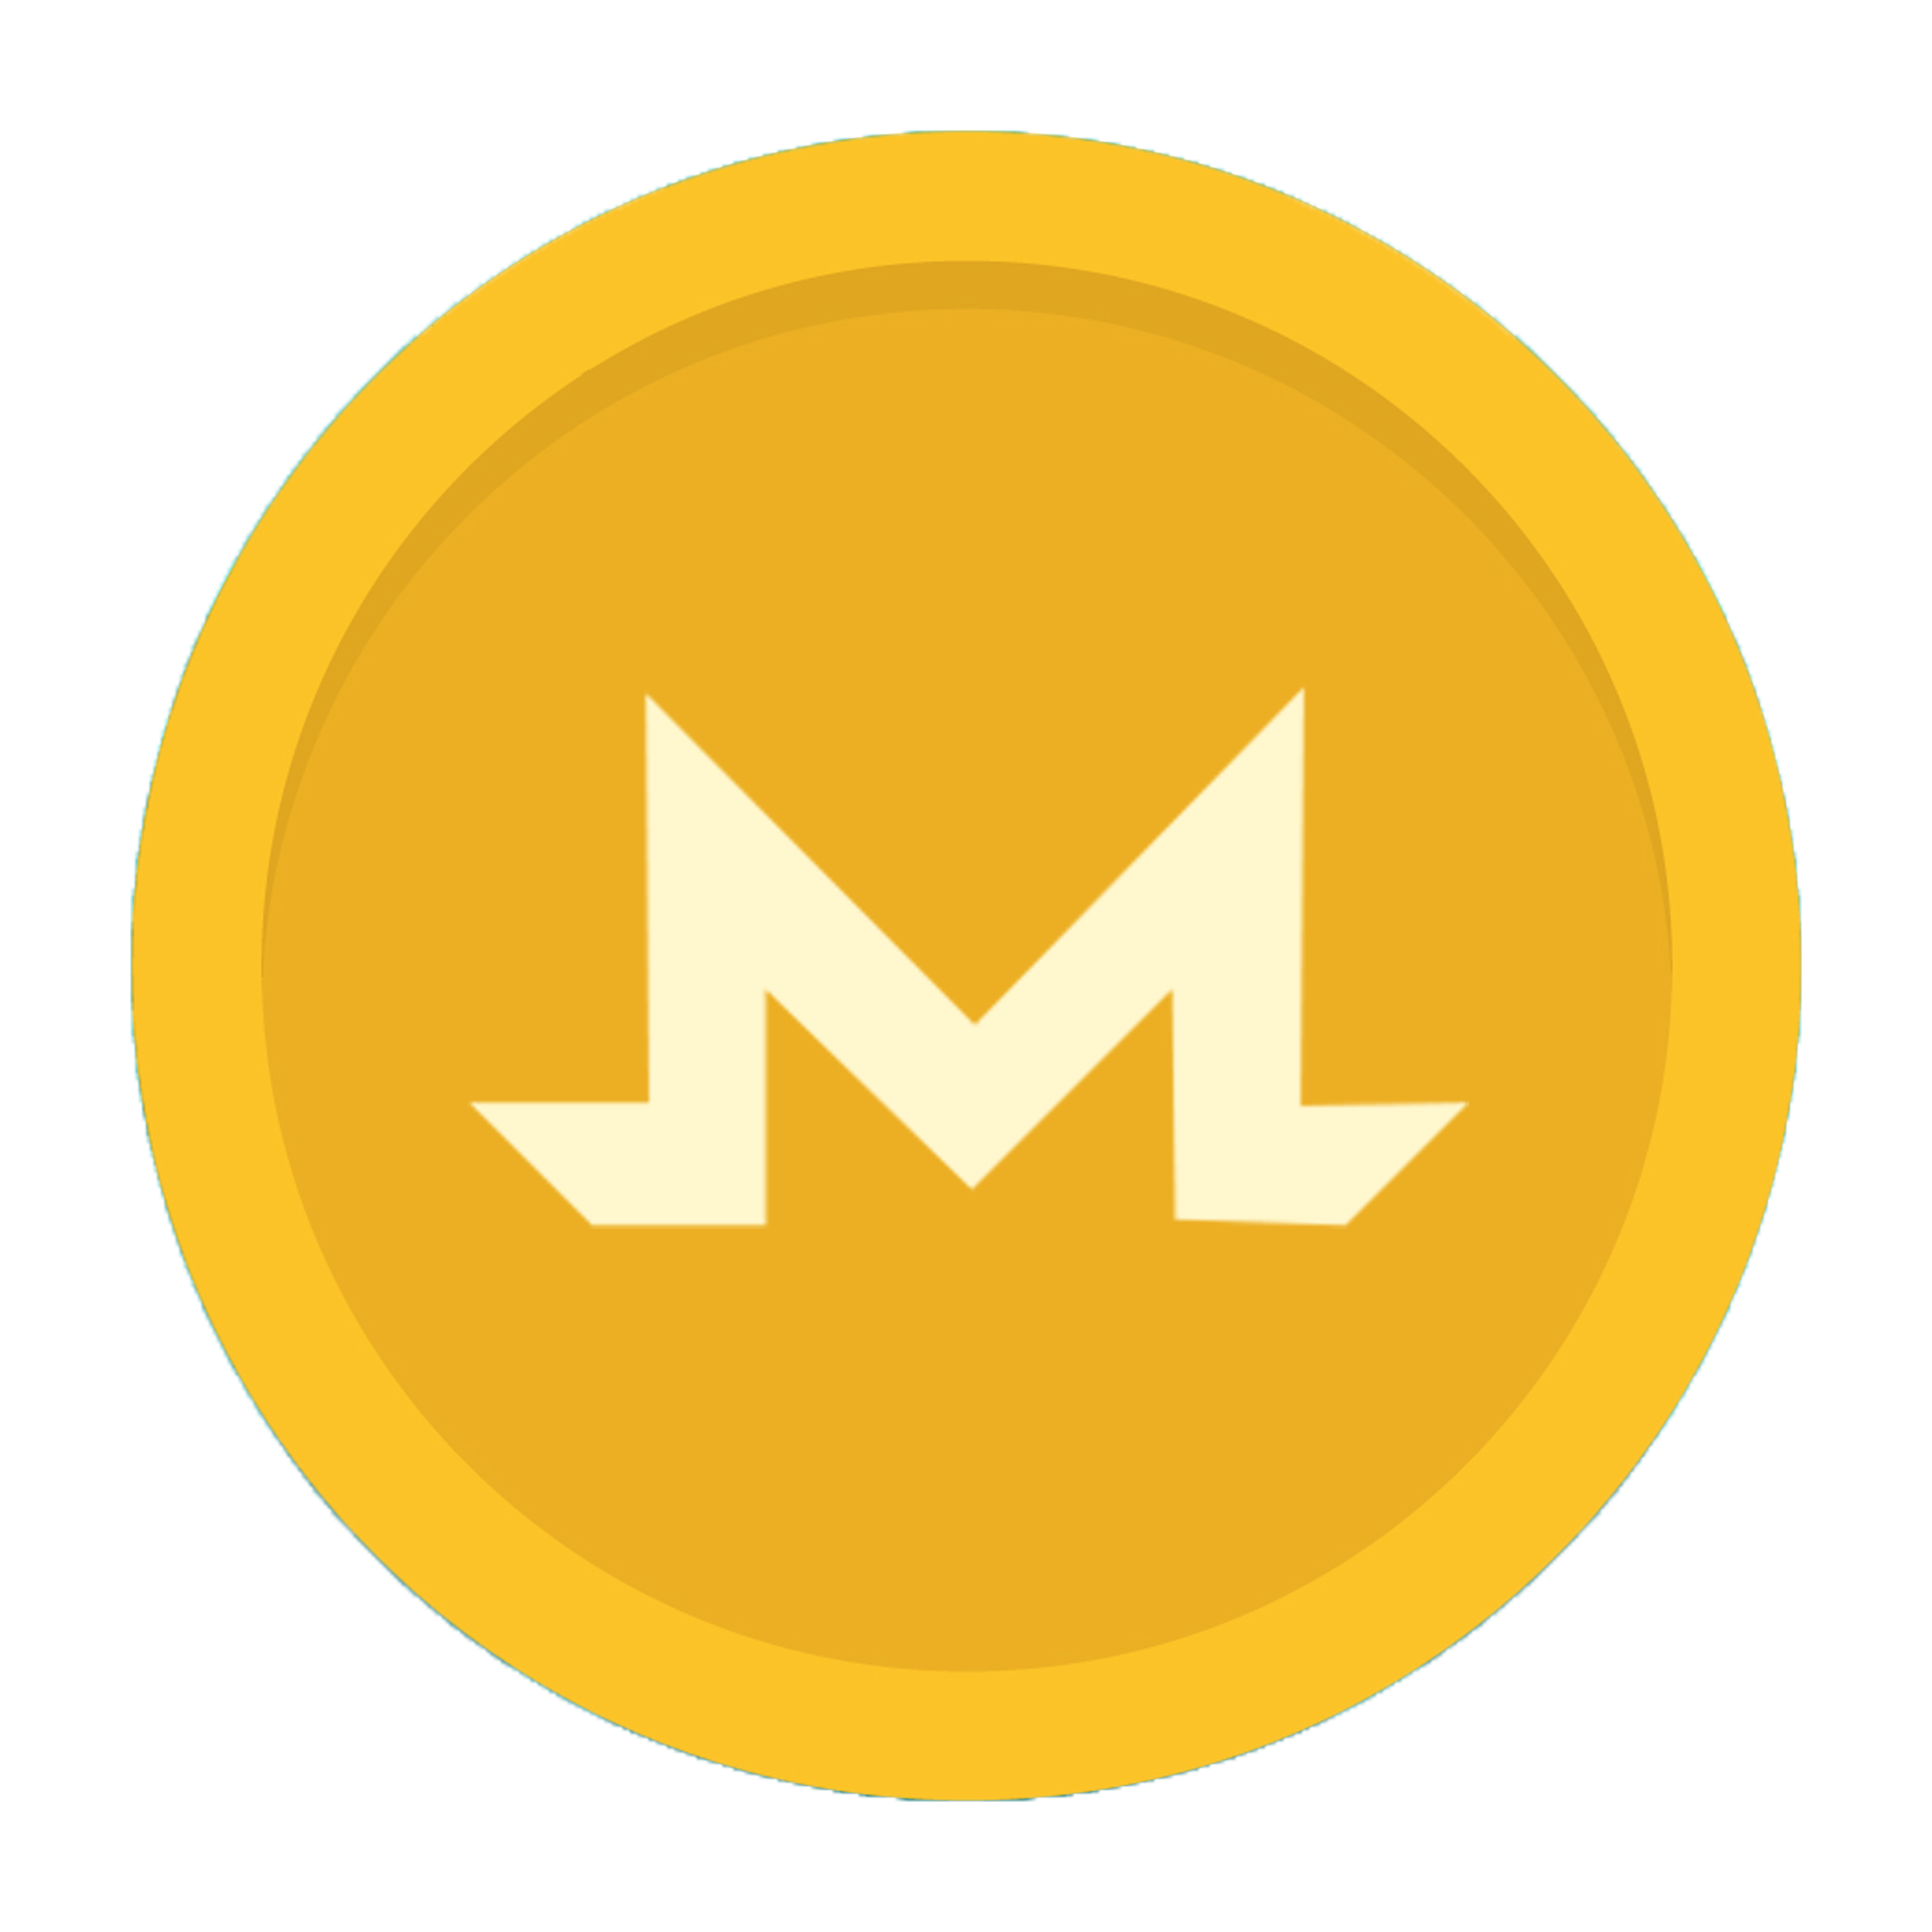 Minex The Easiest Way To Mine Cryptocurrency In 2021 Cloud Mining Cryptocurrency Mining